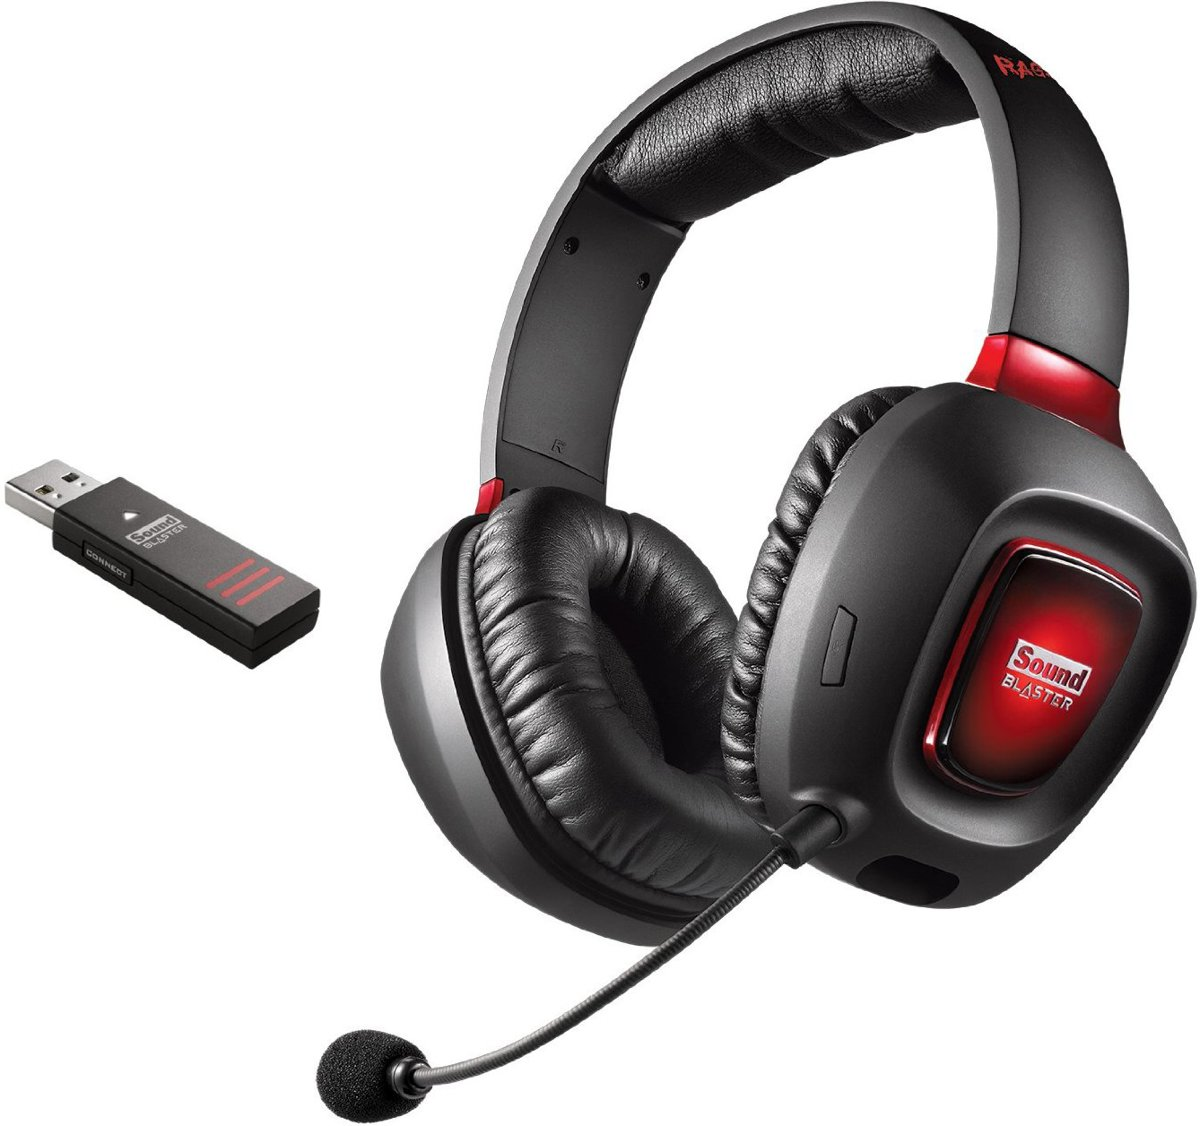 Creative Sound Blaster TacTic3D RAGE V2.0 - Headset